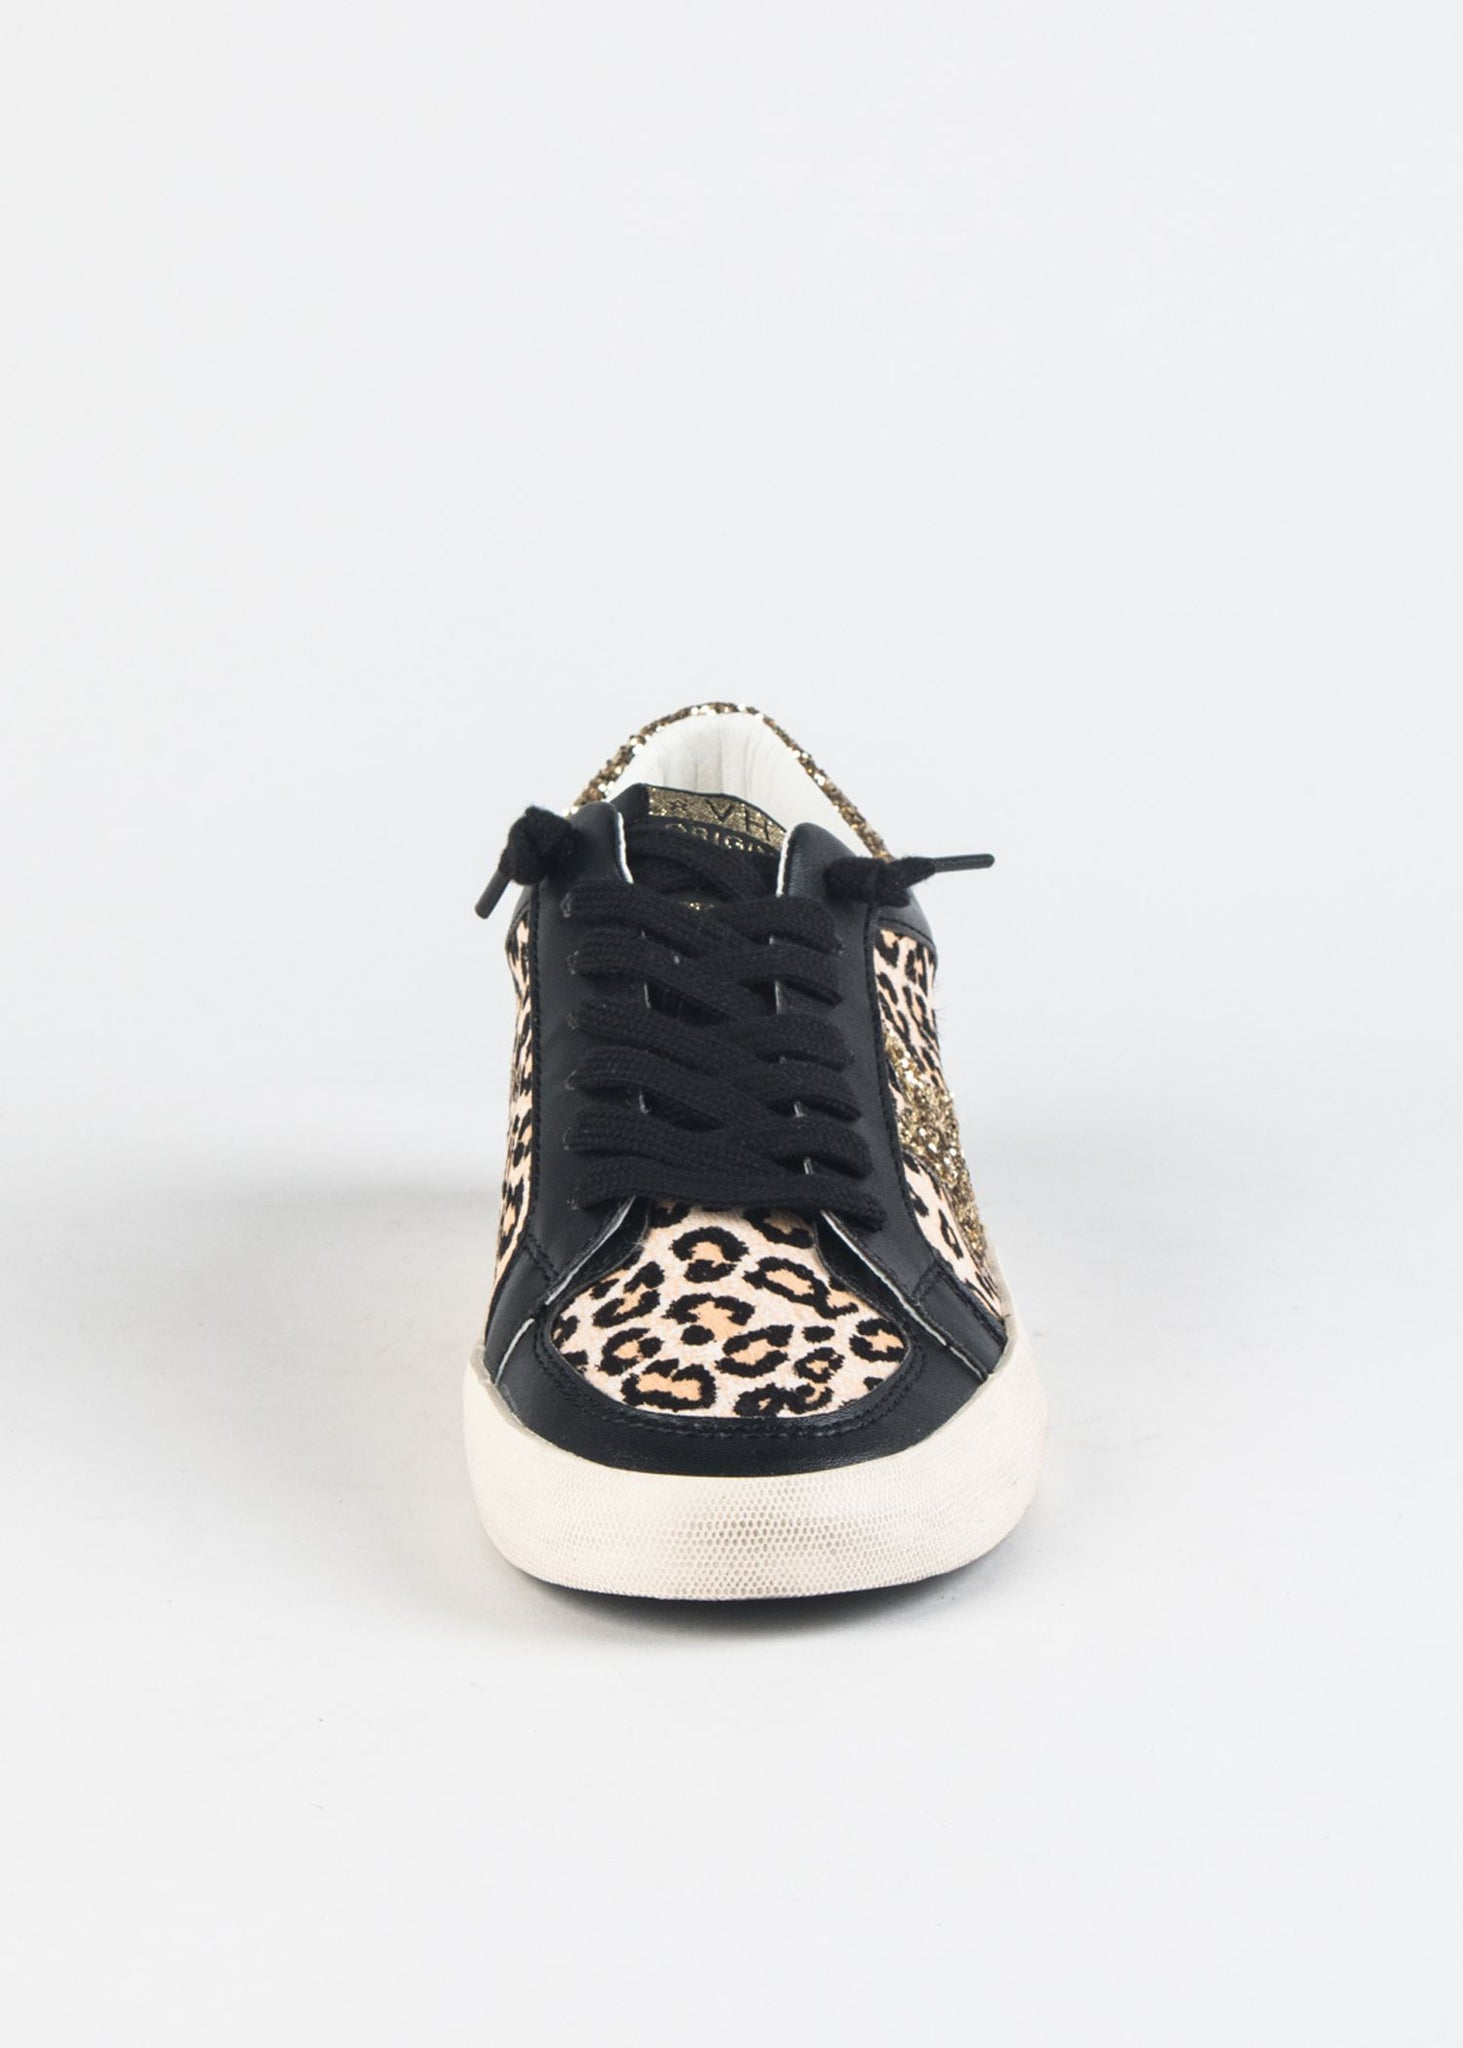 MAIDEN MULTI MEDIA SNEAKER